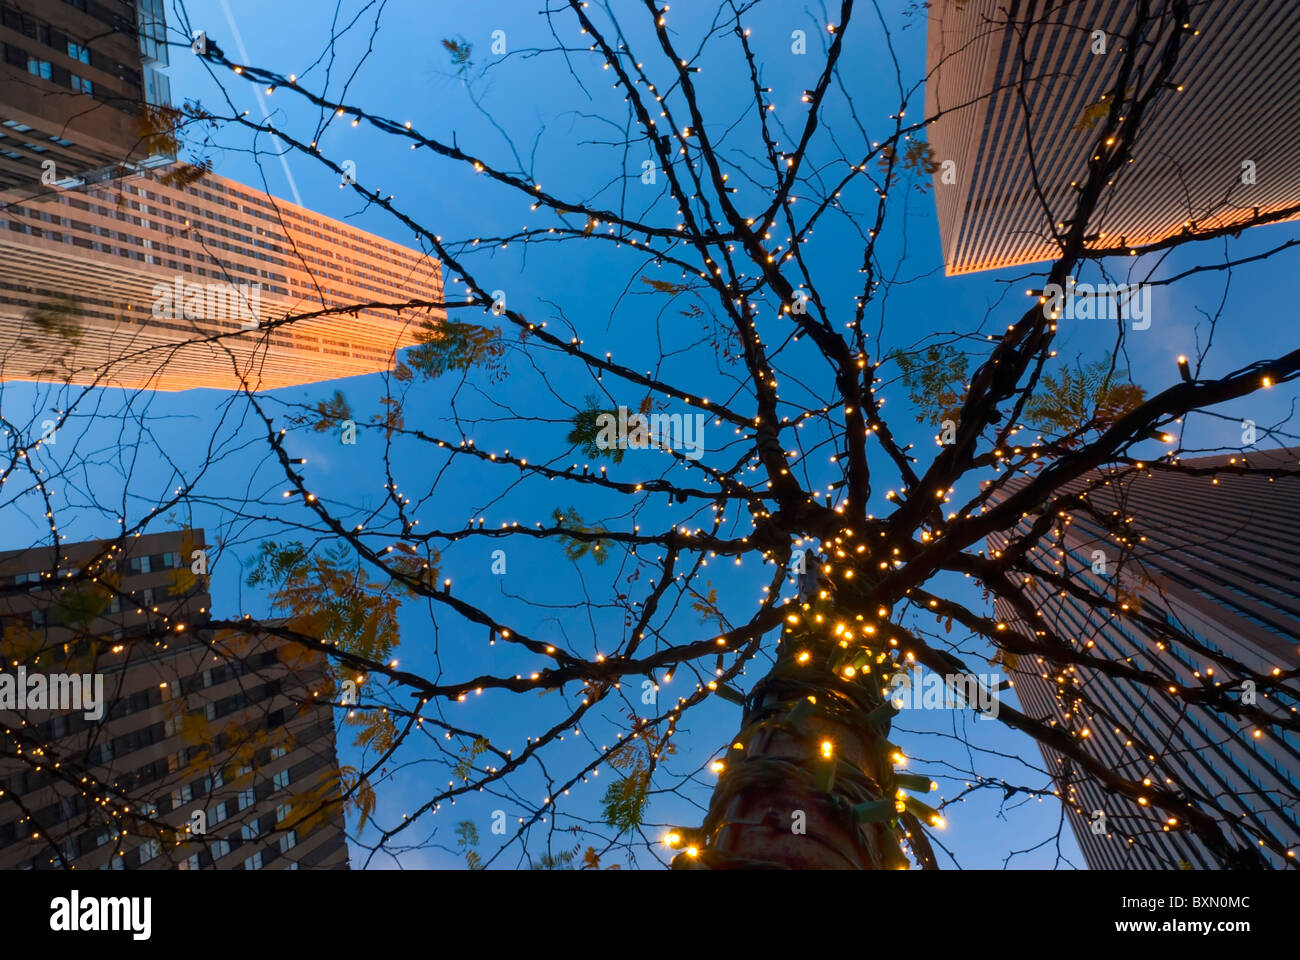 Skyscrapers of Rockefeller Center, looking up at tree lit with holiday white lights, twilight, 6th Avenue, Manhattan Stock Photo